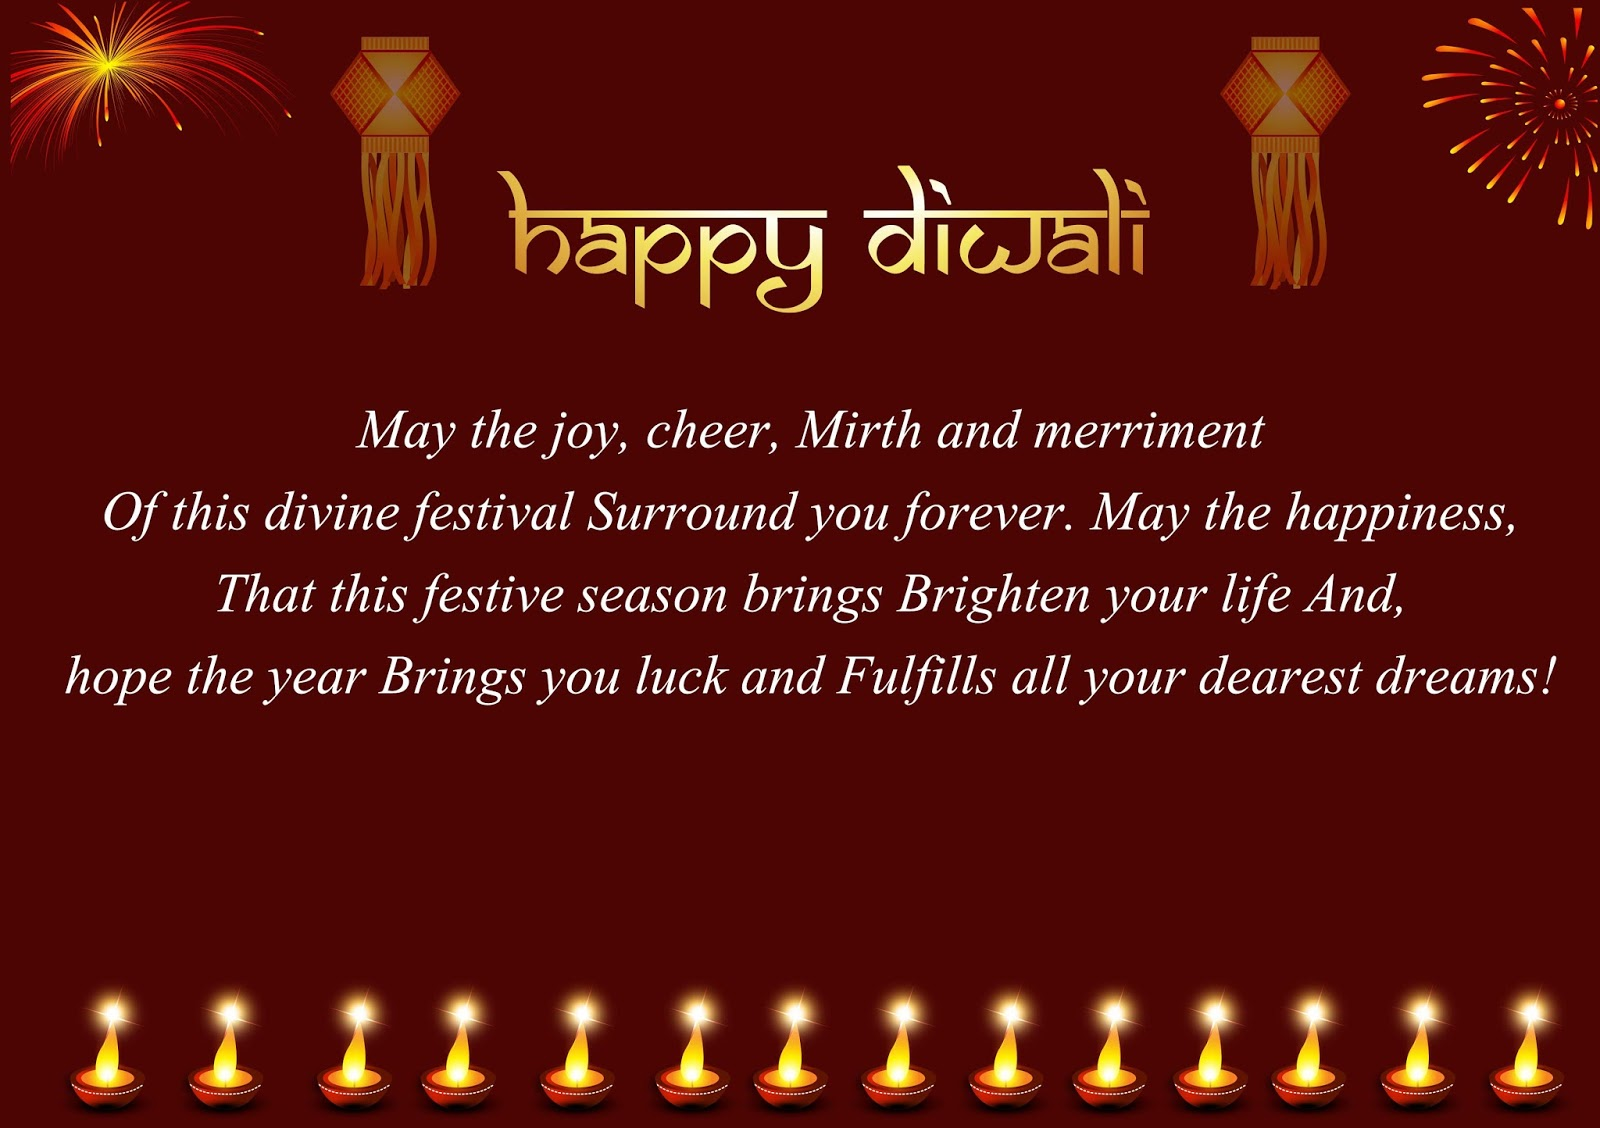 Top 100 happy diwali images wishes messages greeting quotes happy diwali images m4hsunfo